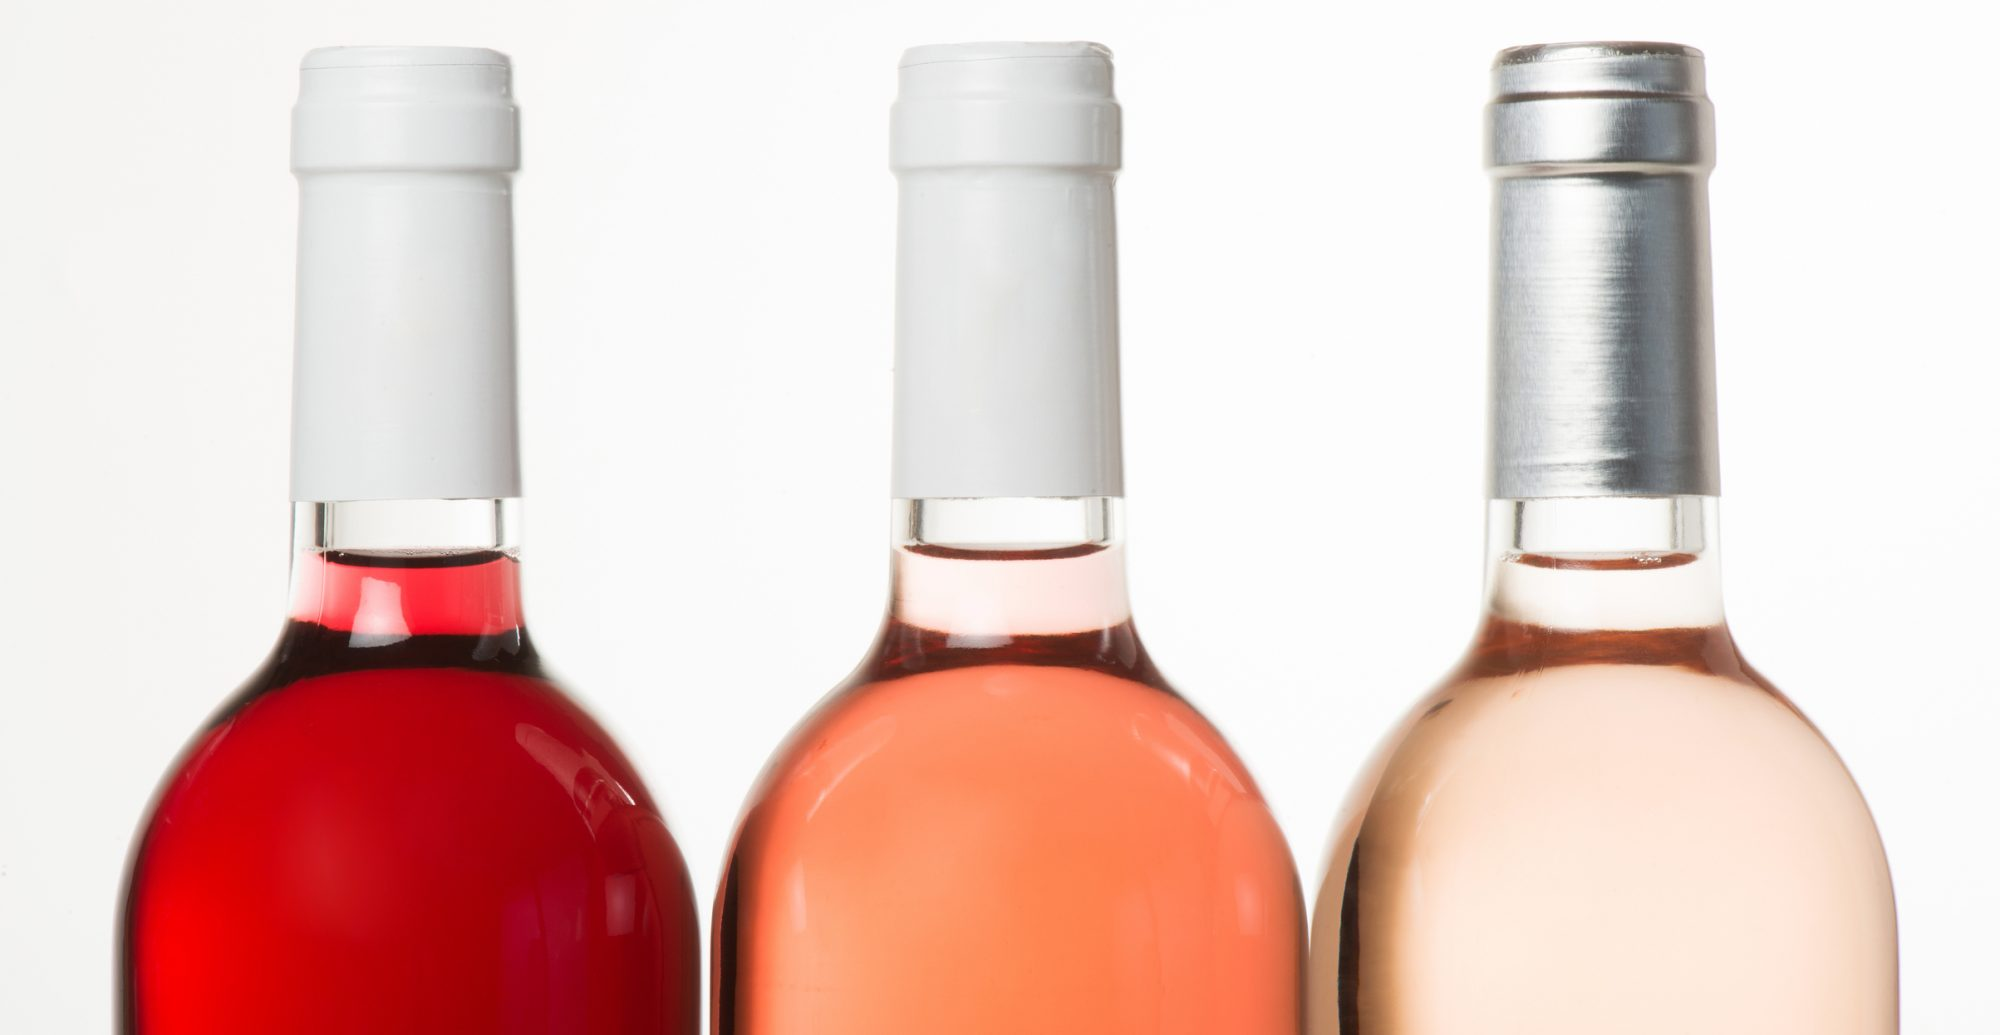 Tree colors of Rose wine in bottle, isolated on white